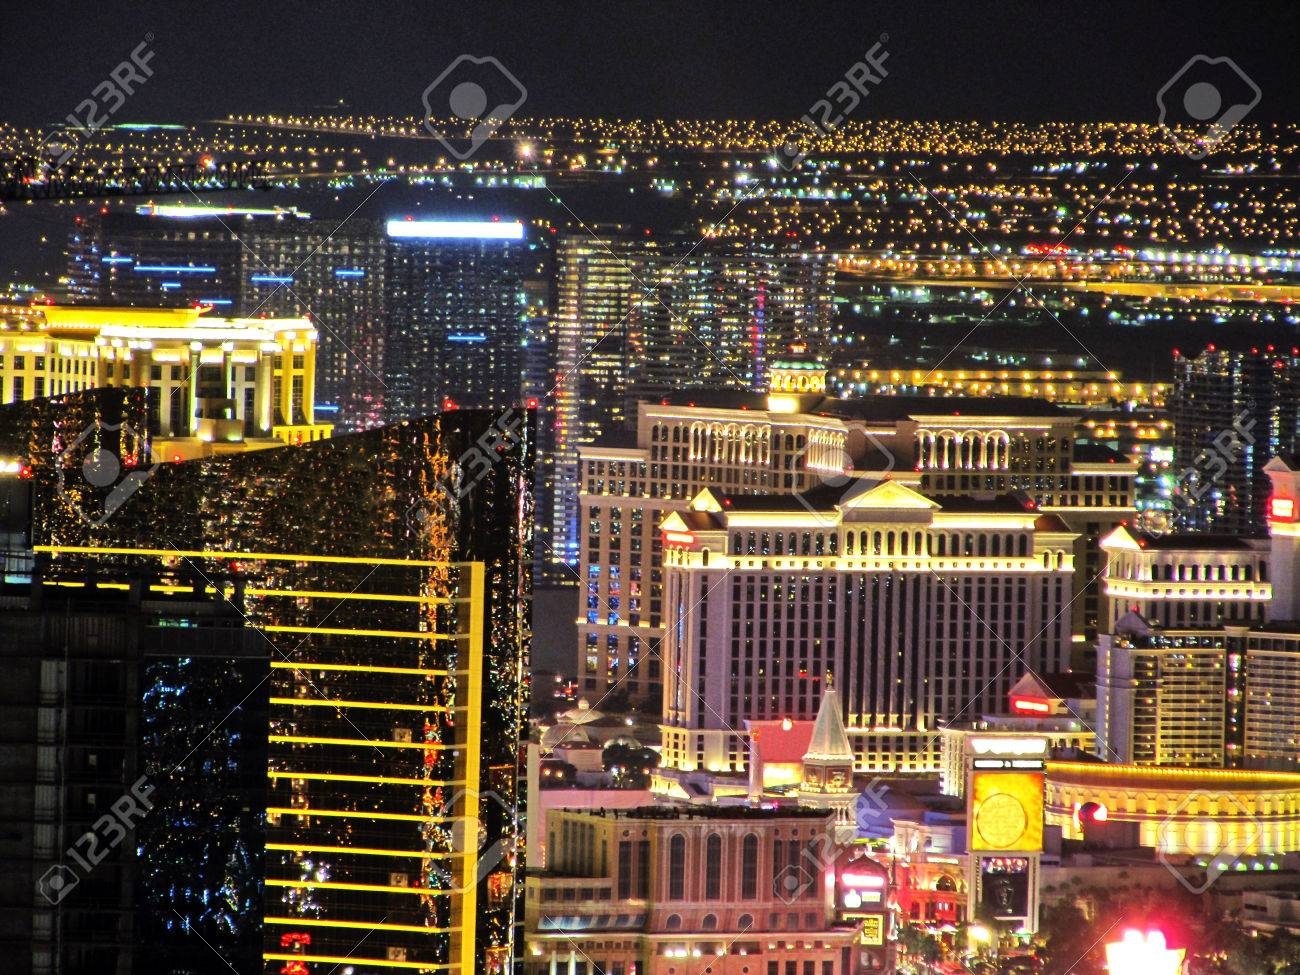 The Strip Of Las Vegas Hotels Aerial Night View Without Hotels